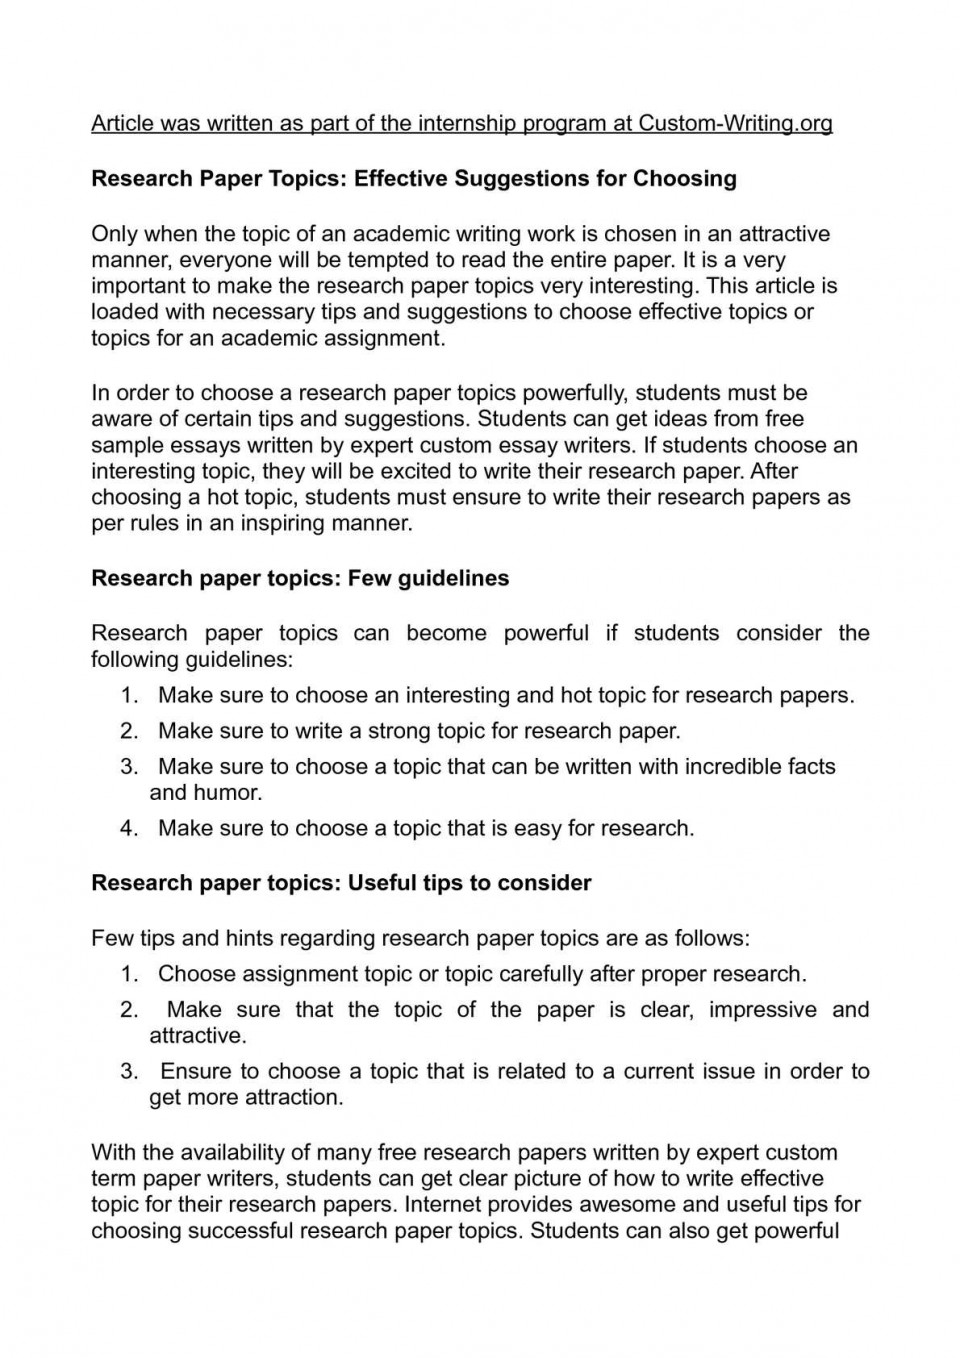 019 Research Paper Topics For Awful In Marketing Law About School Problems 960